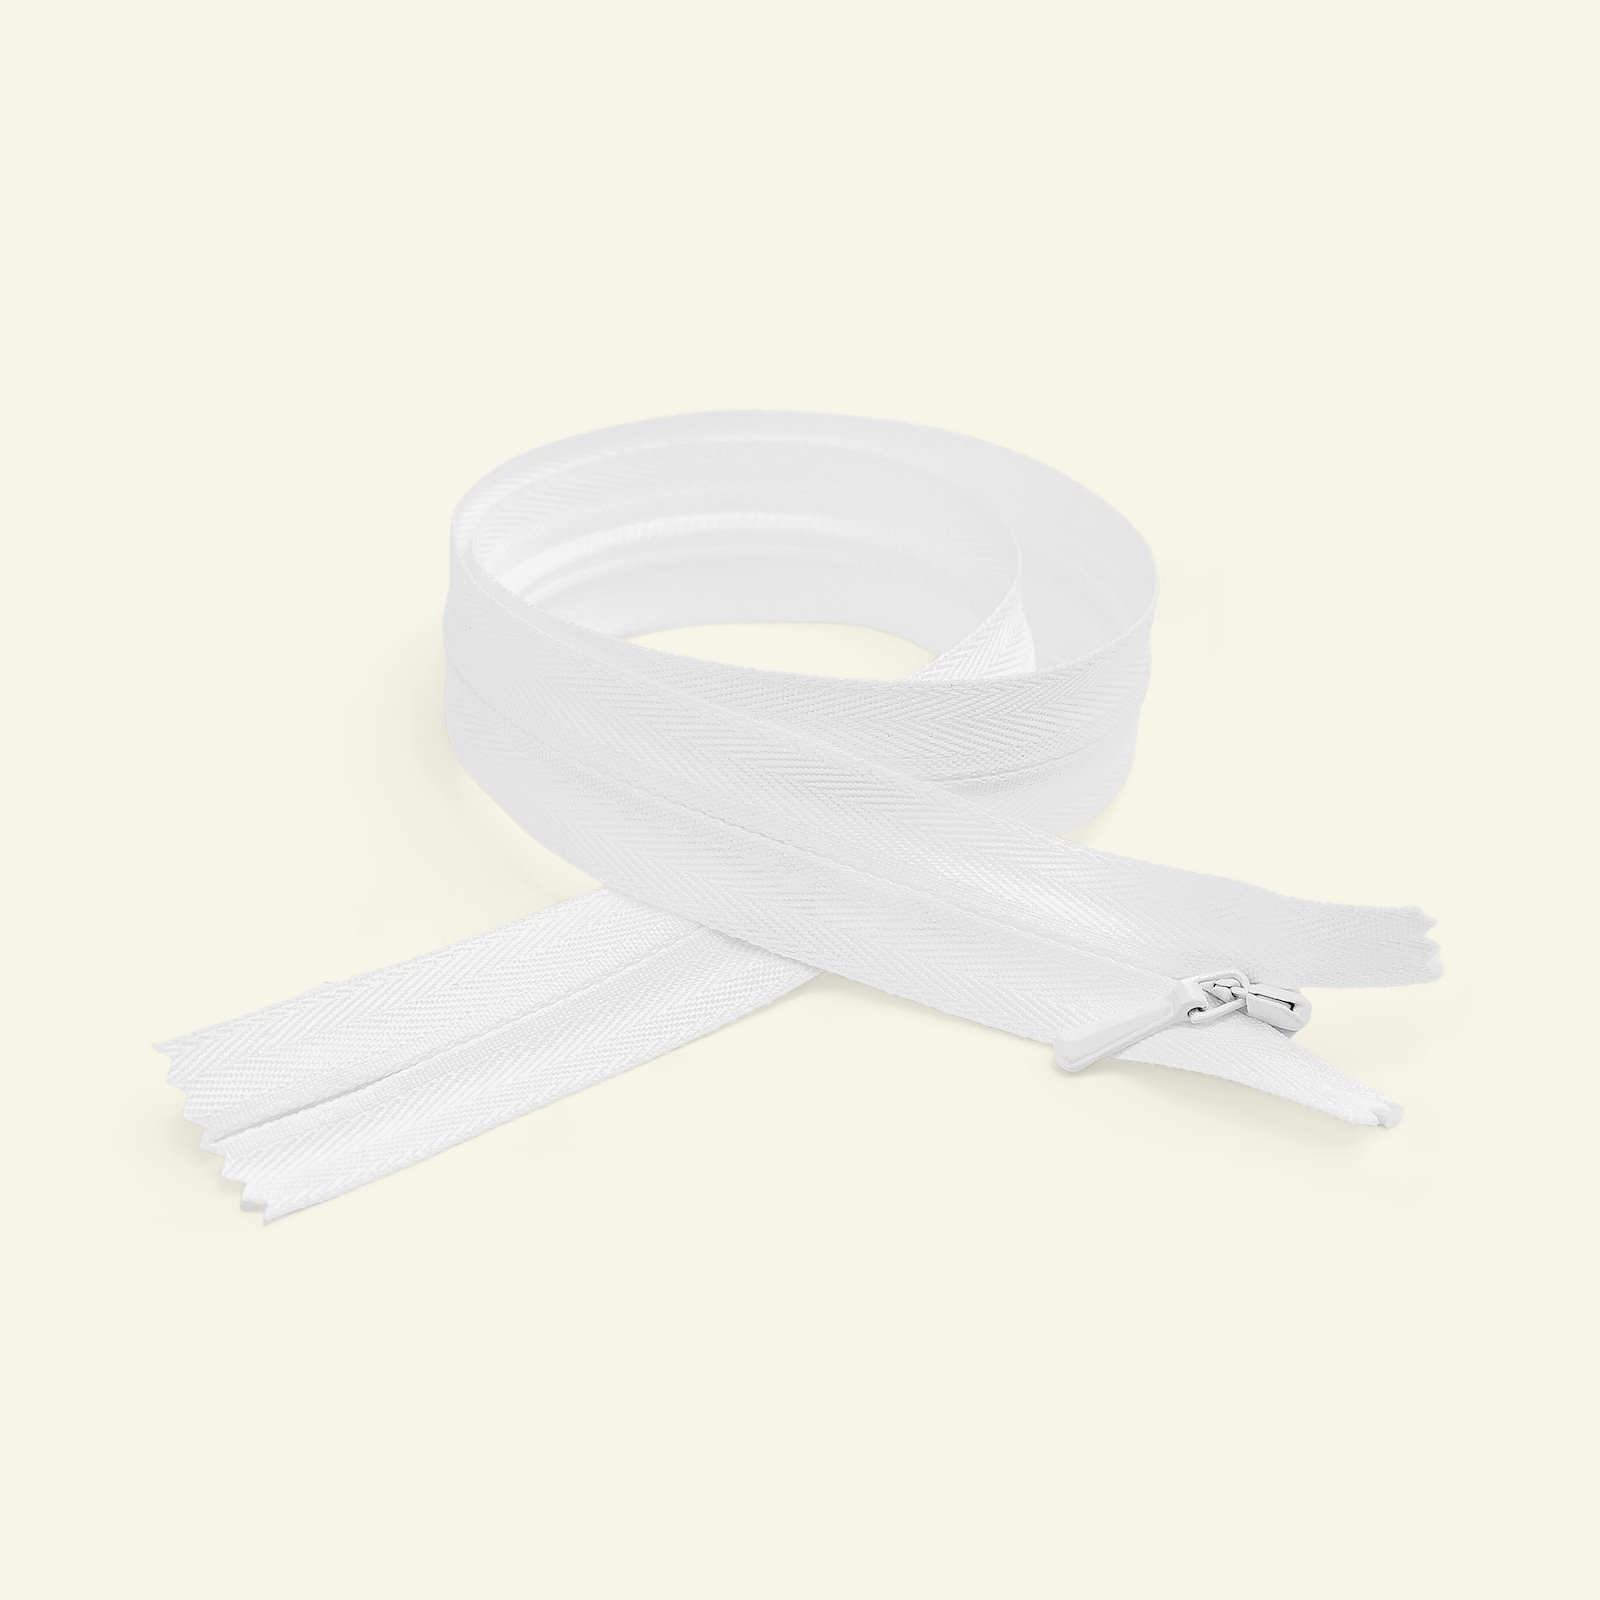 YKK zip 4mm invisible closed 35cm white x40701_pack